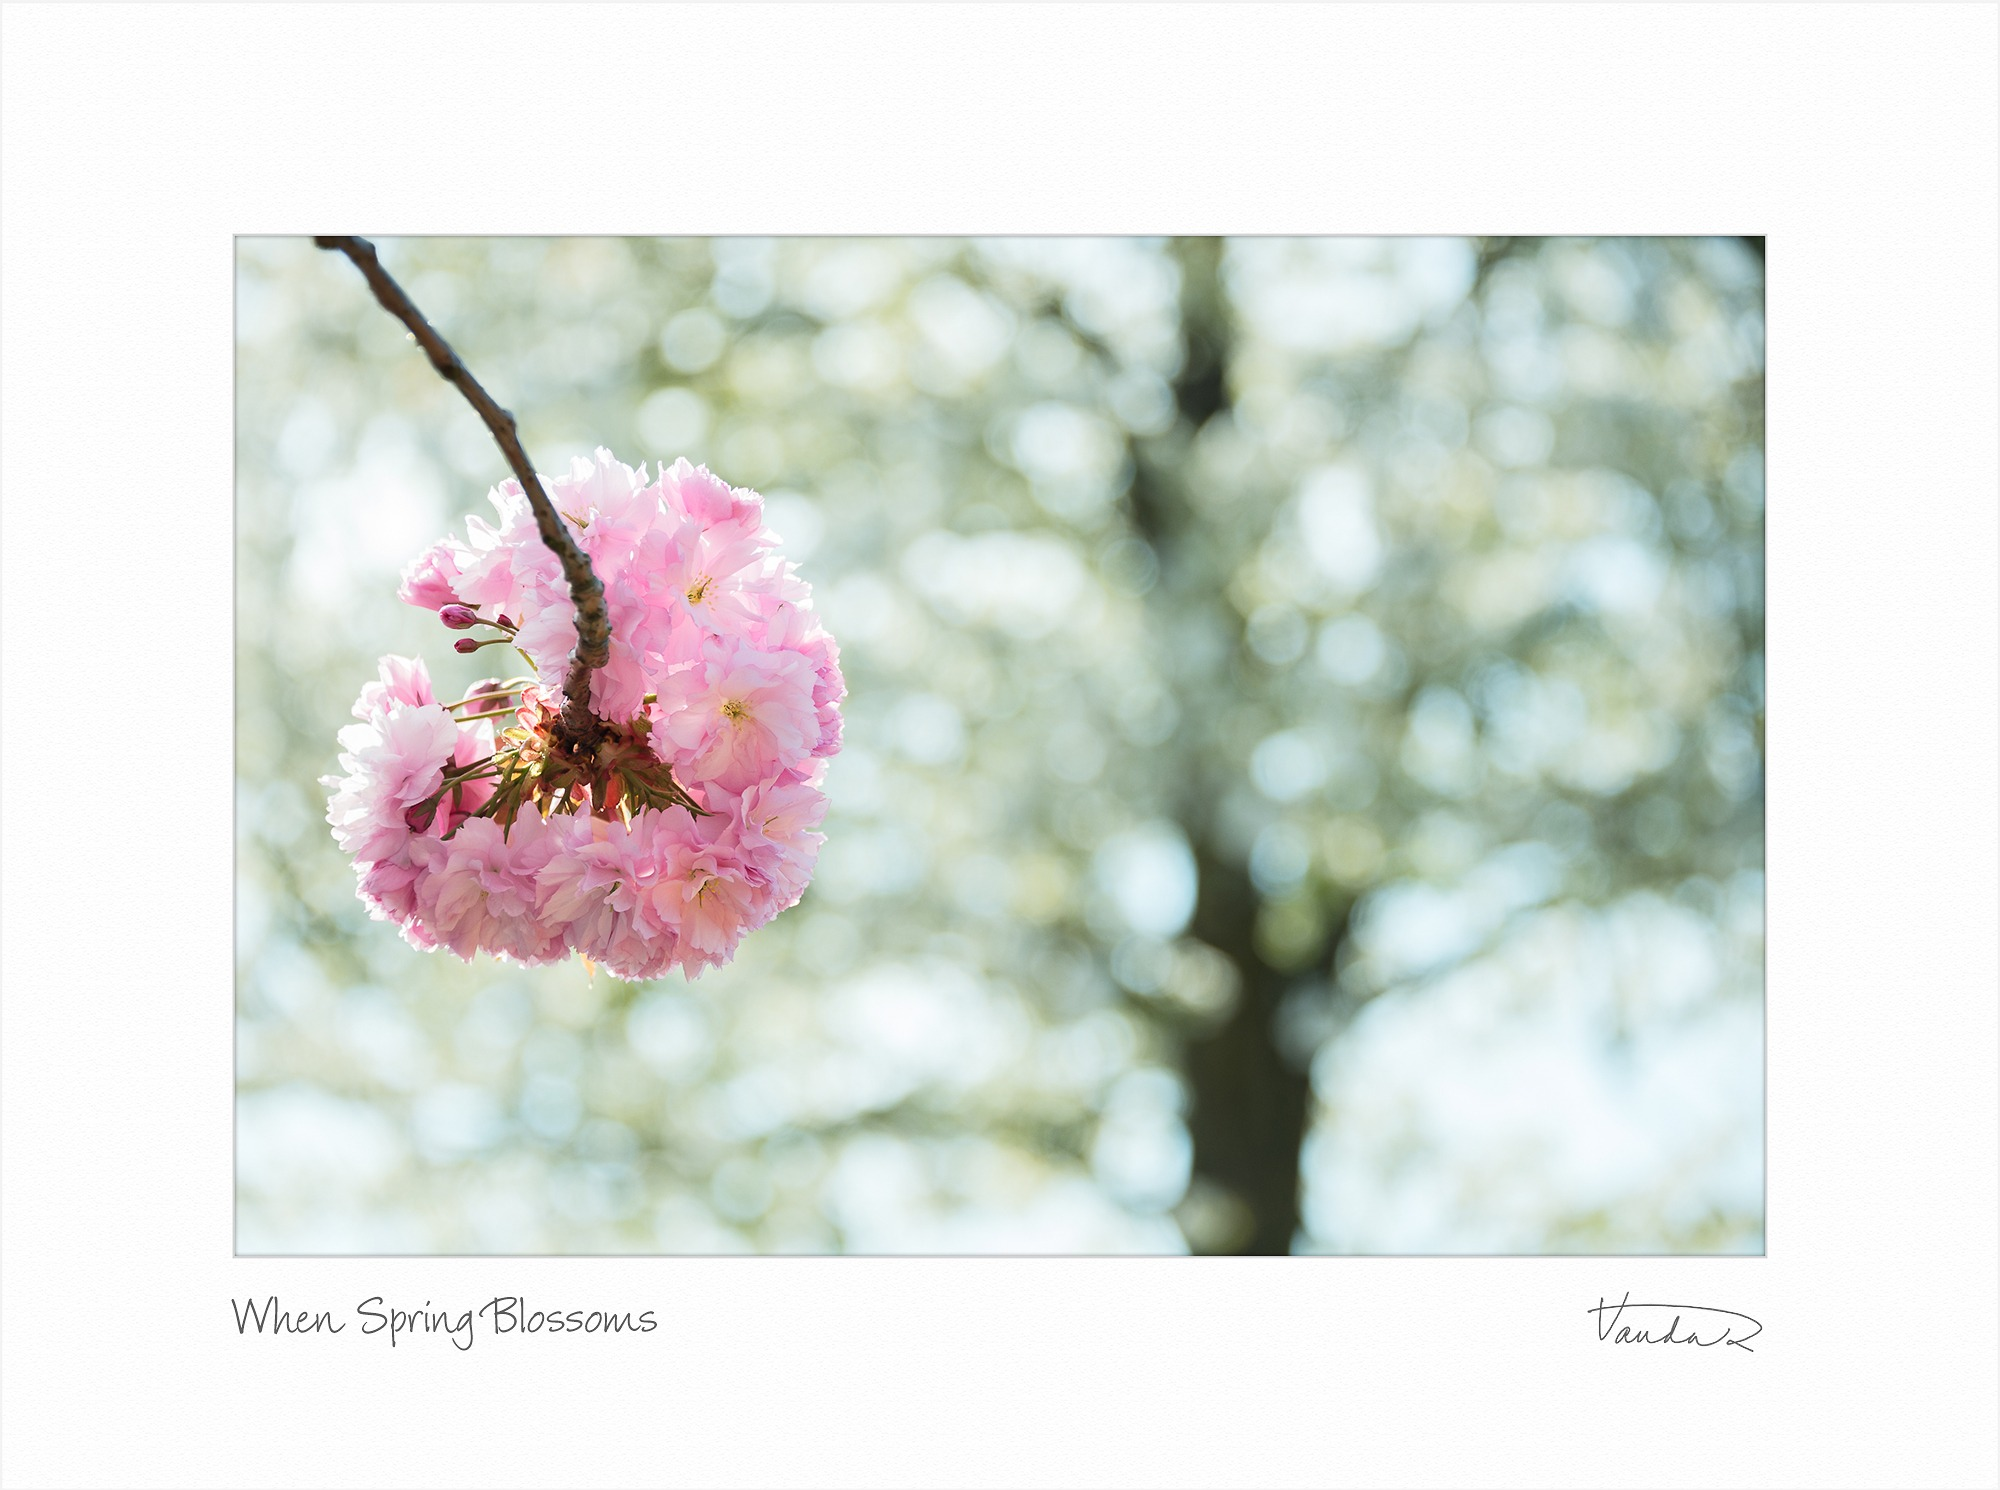 When Spring Blossoms